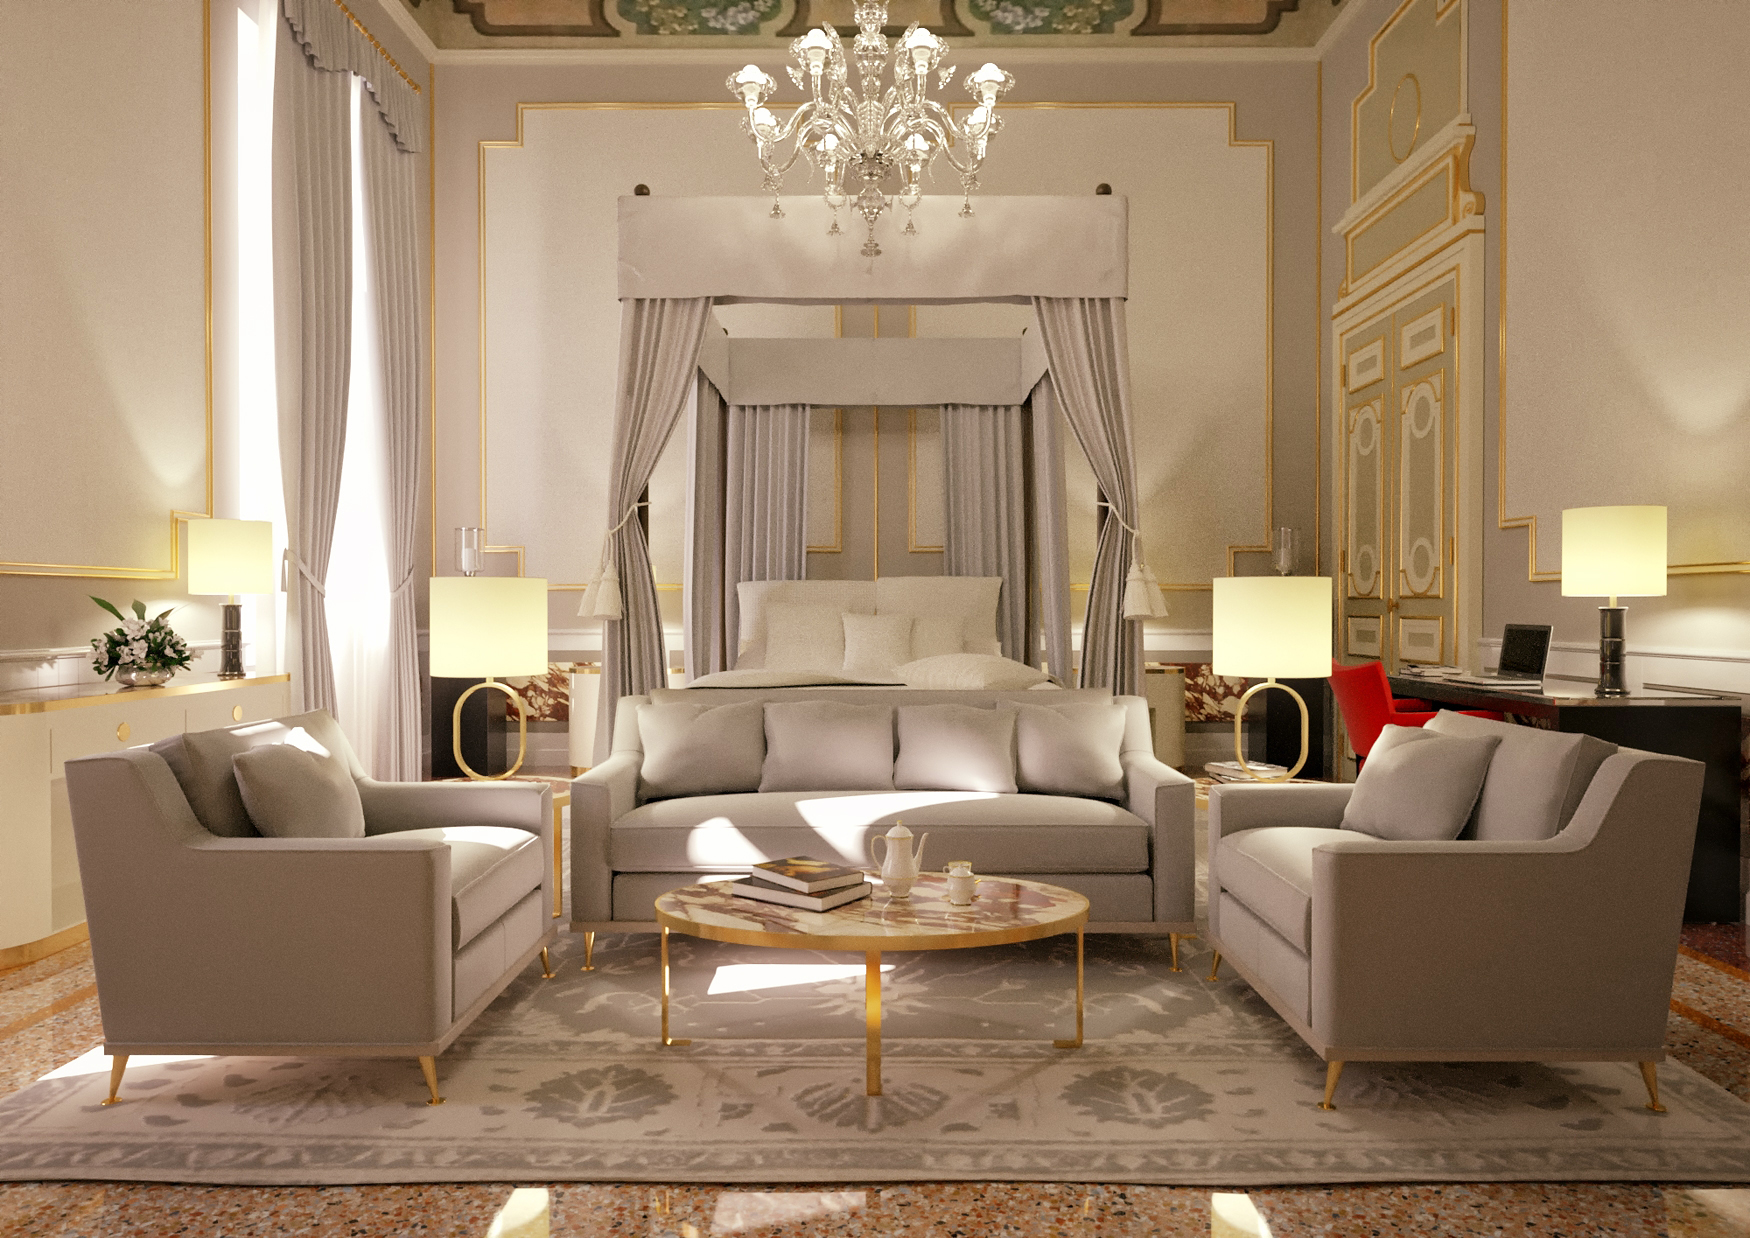 Ldc group to open new hotel in venice ldc italian hotels for Design boutique hotel venice